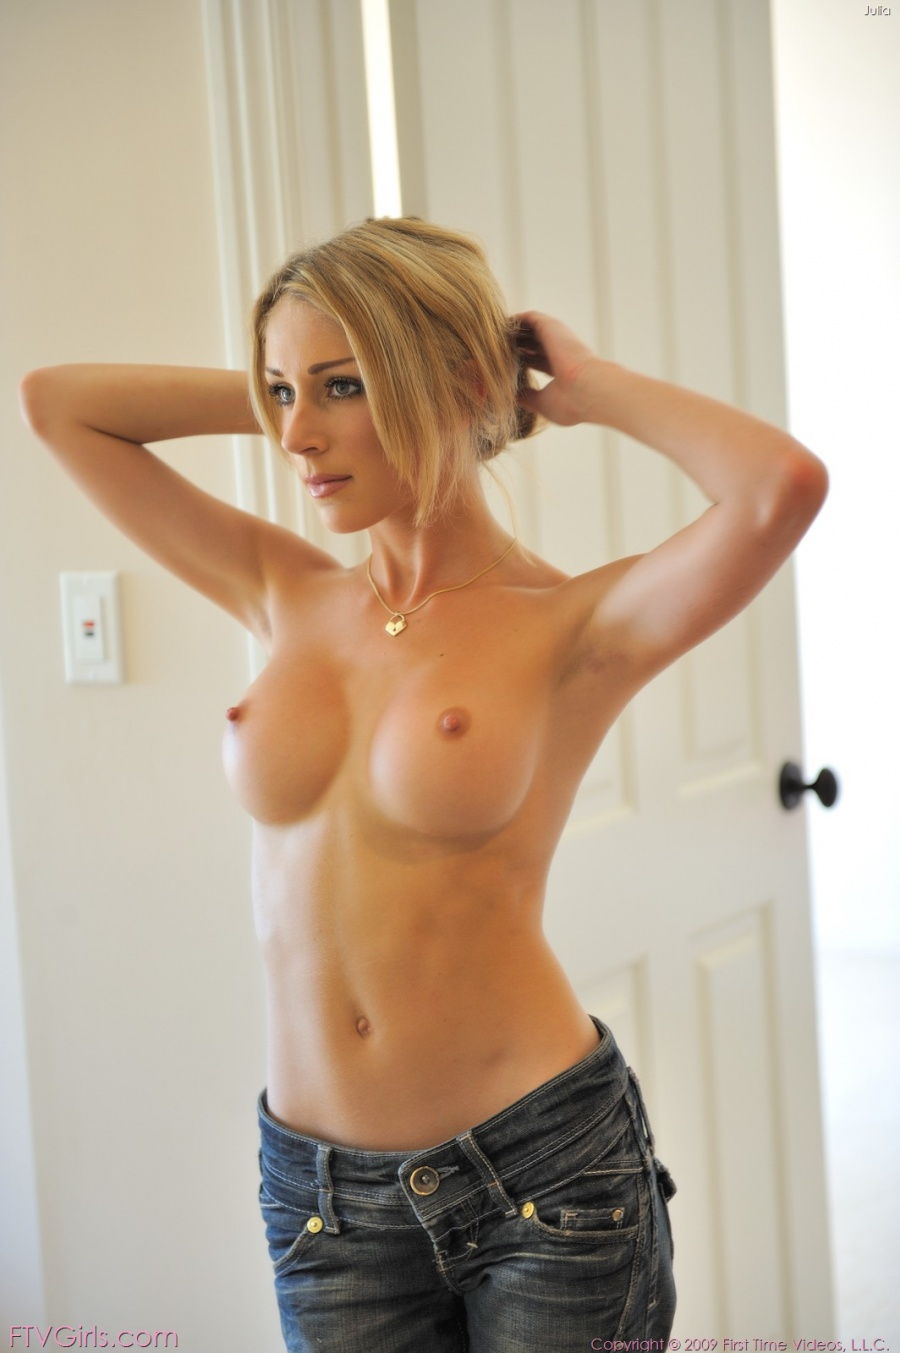 Consider, that amateur fit tits naked